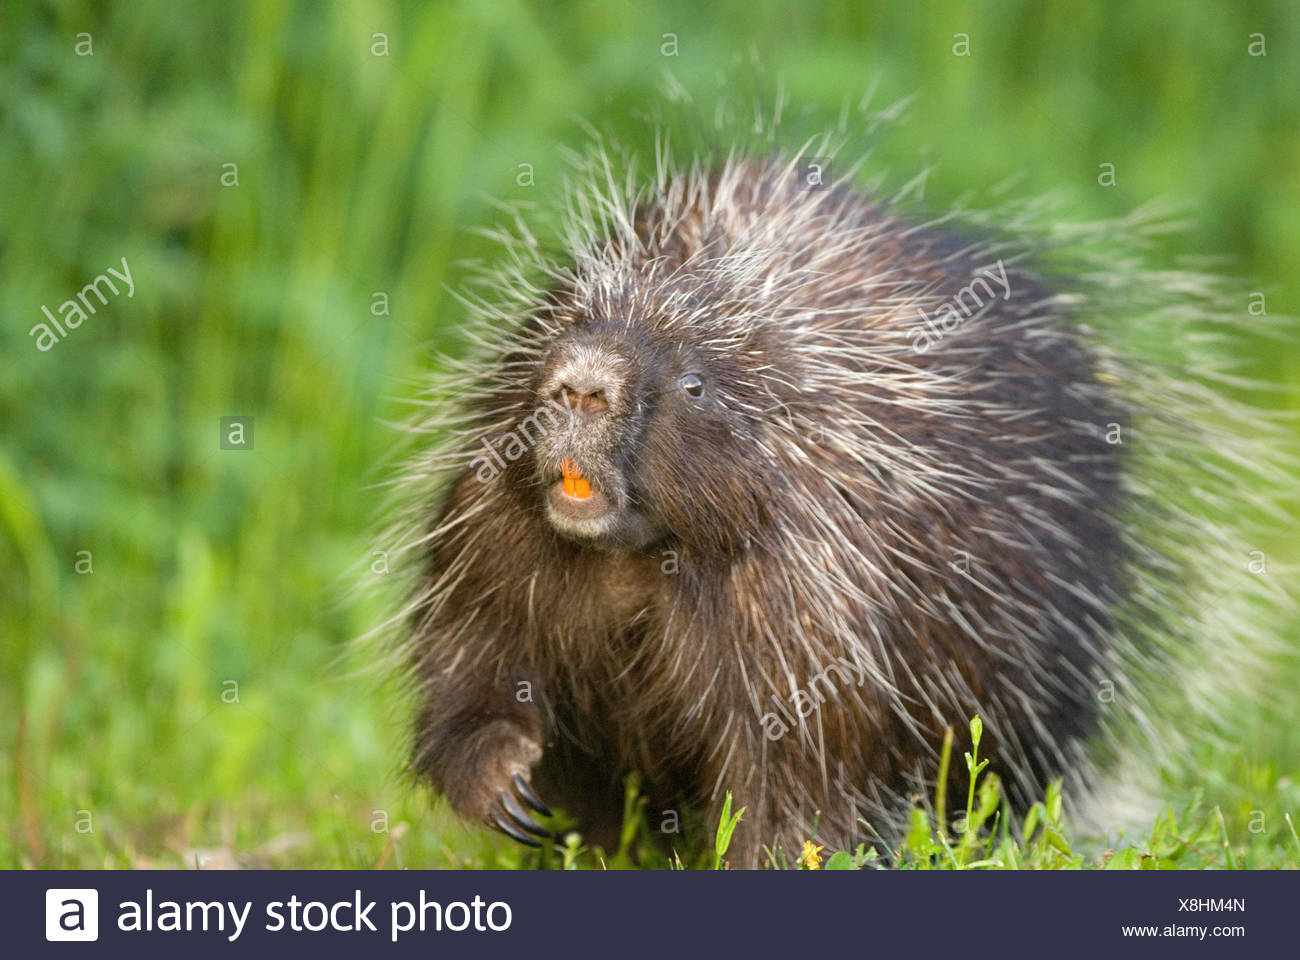 A Porcupine walking in the grass. Stock Photo